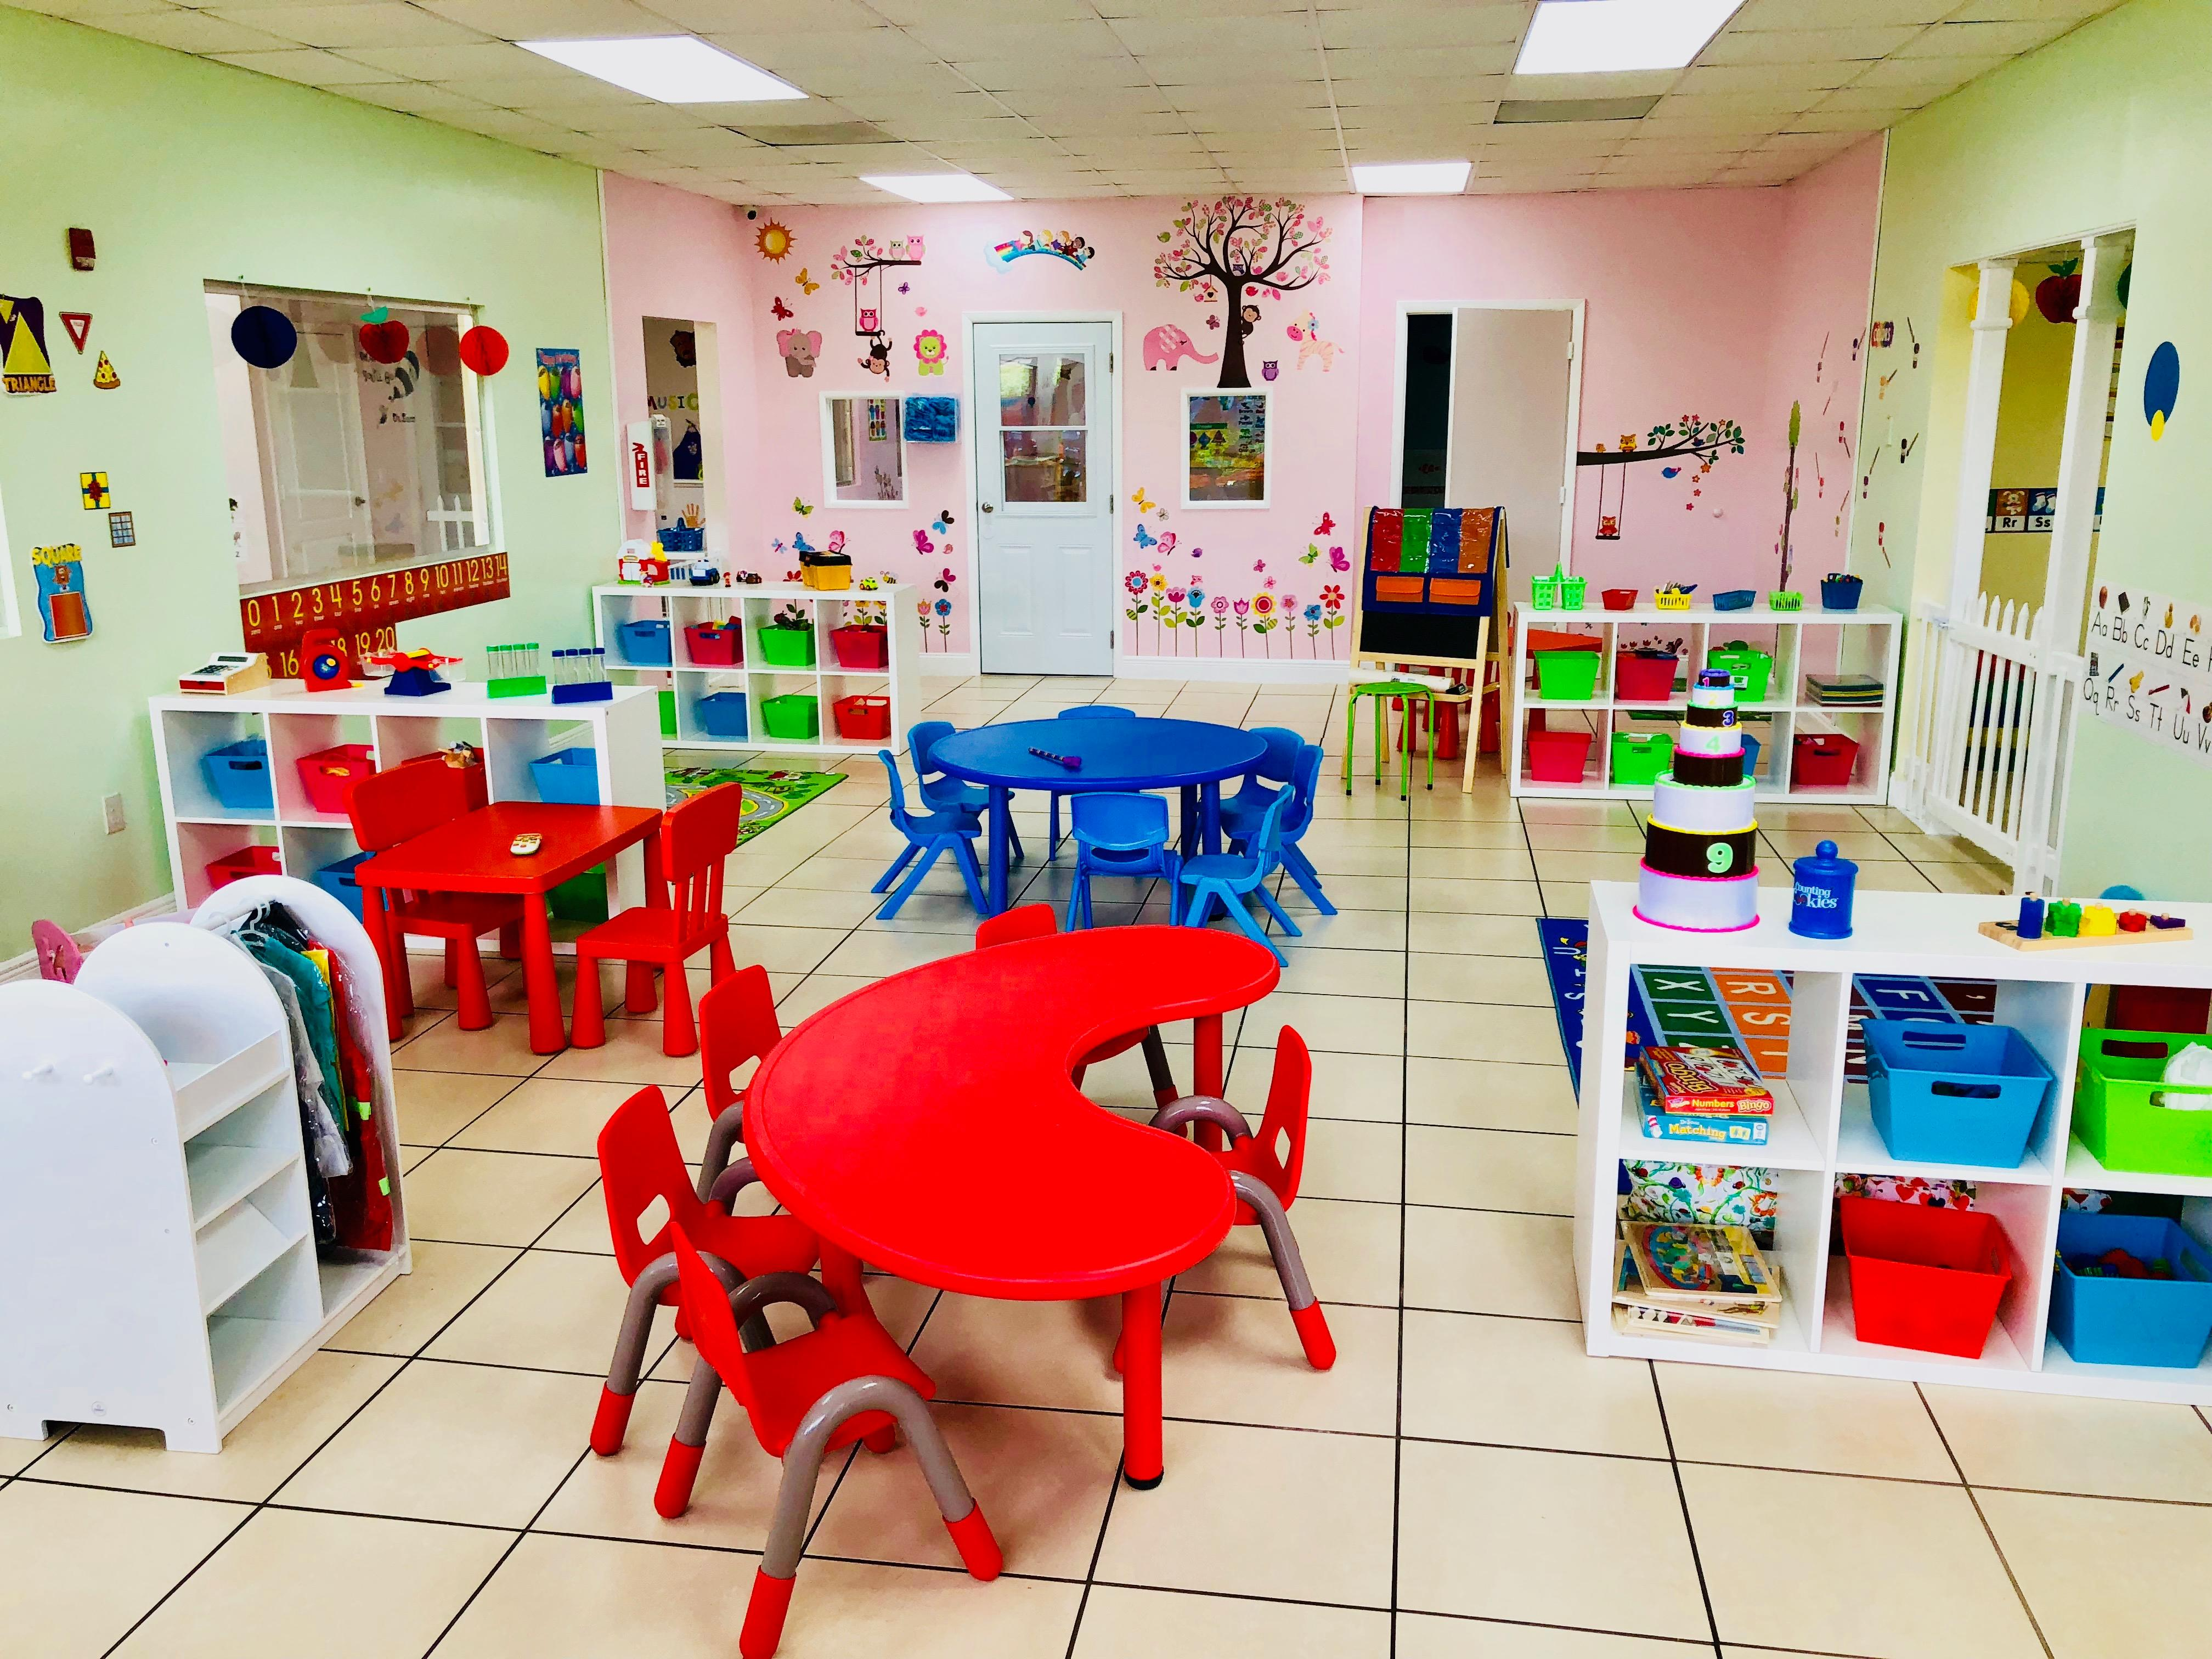 childs day care center - HD1024×768